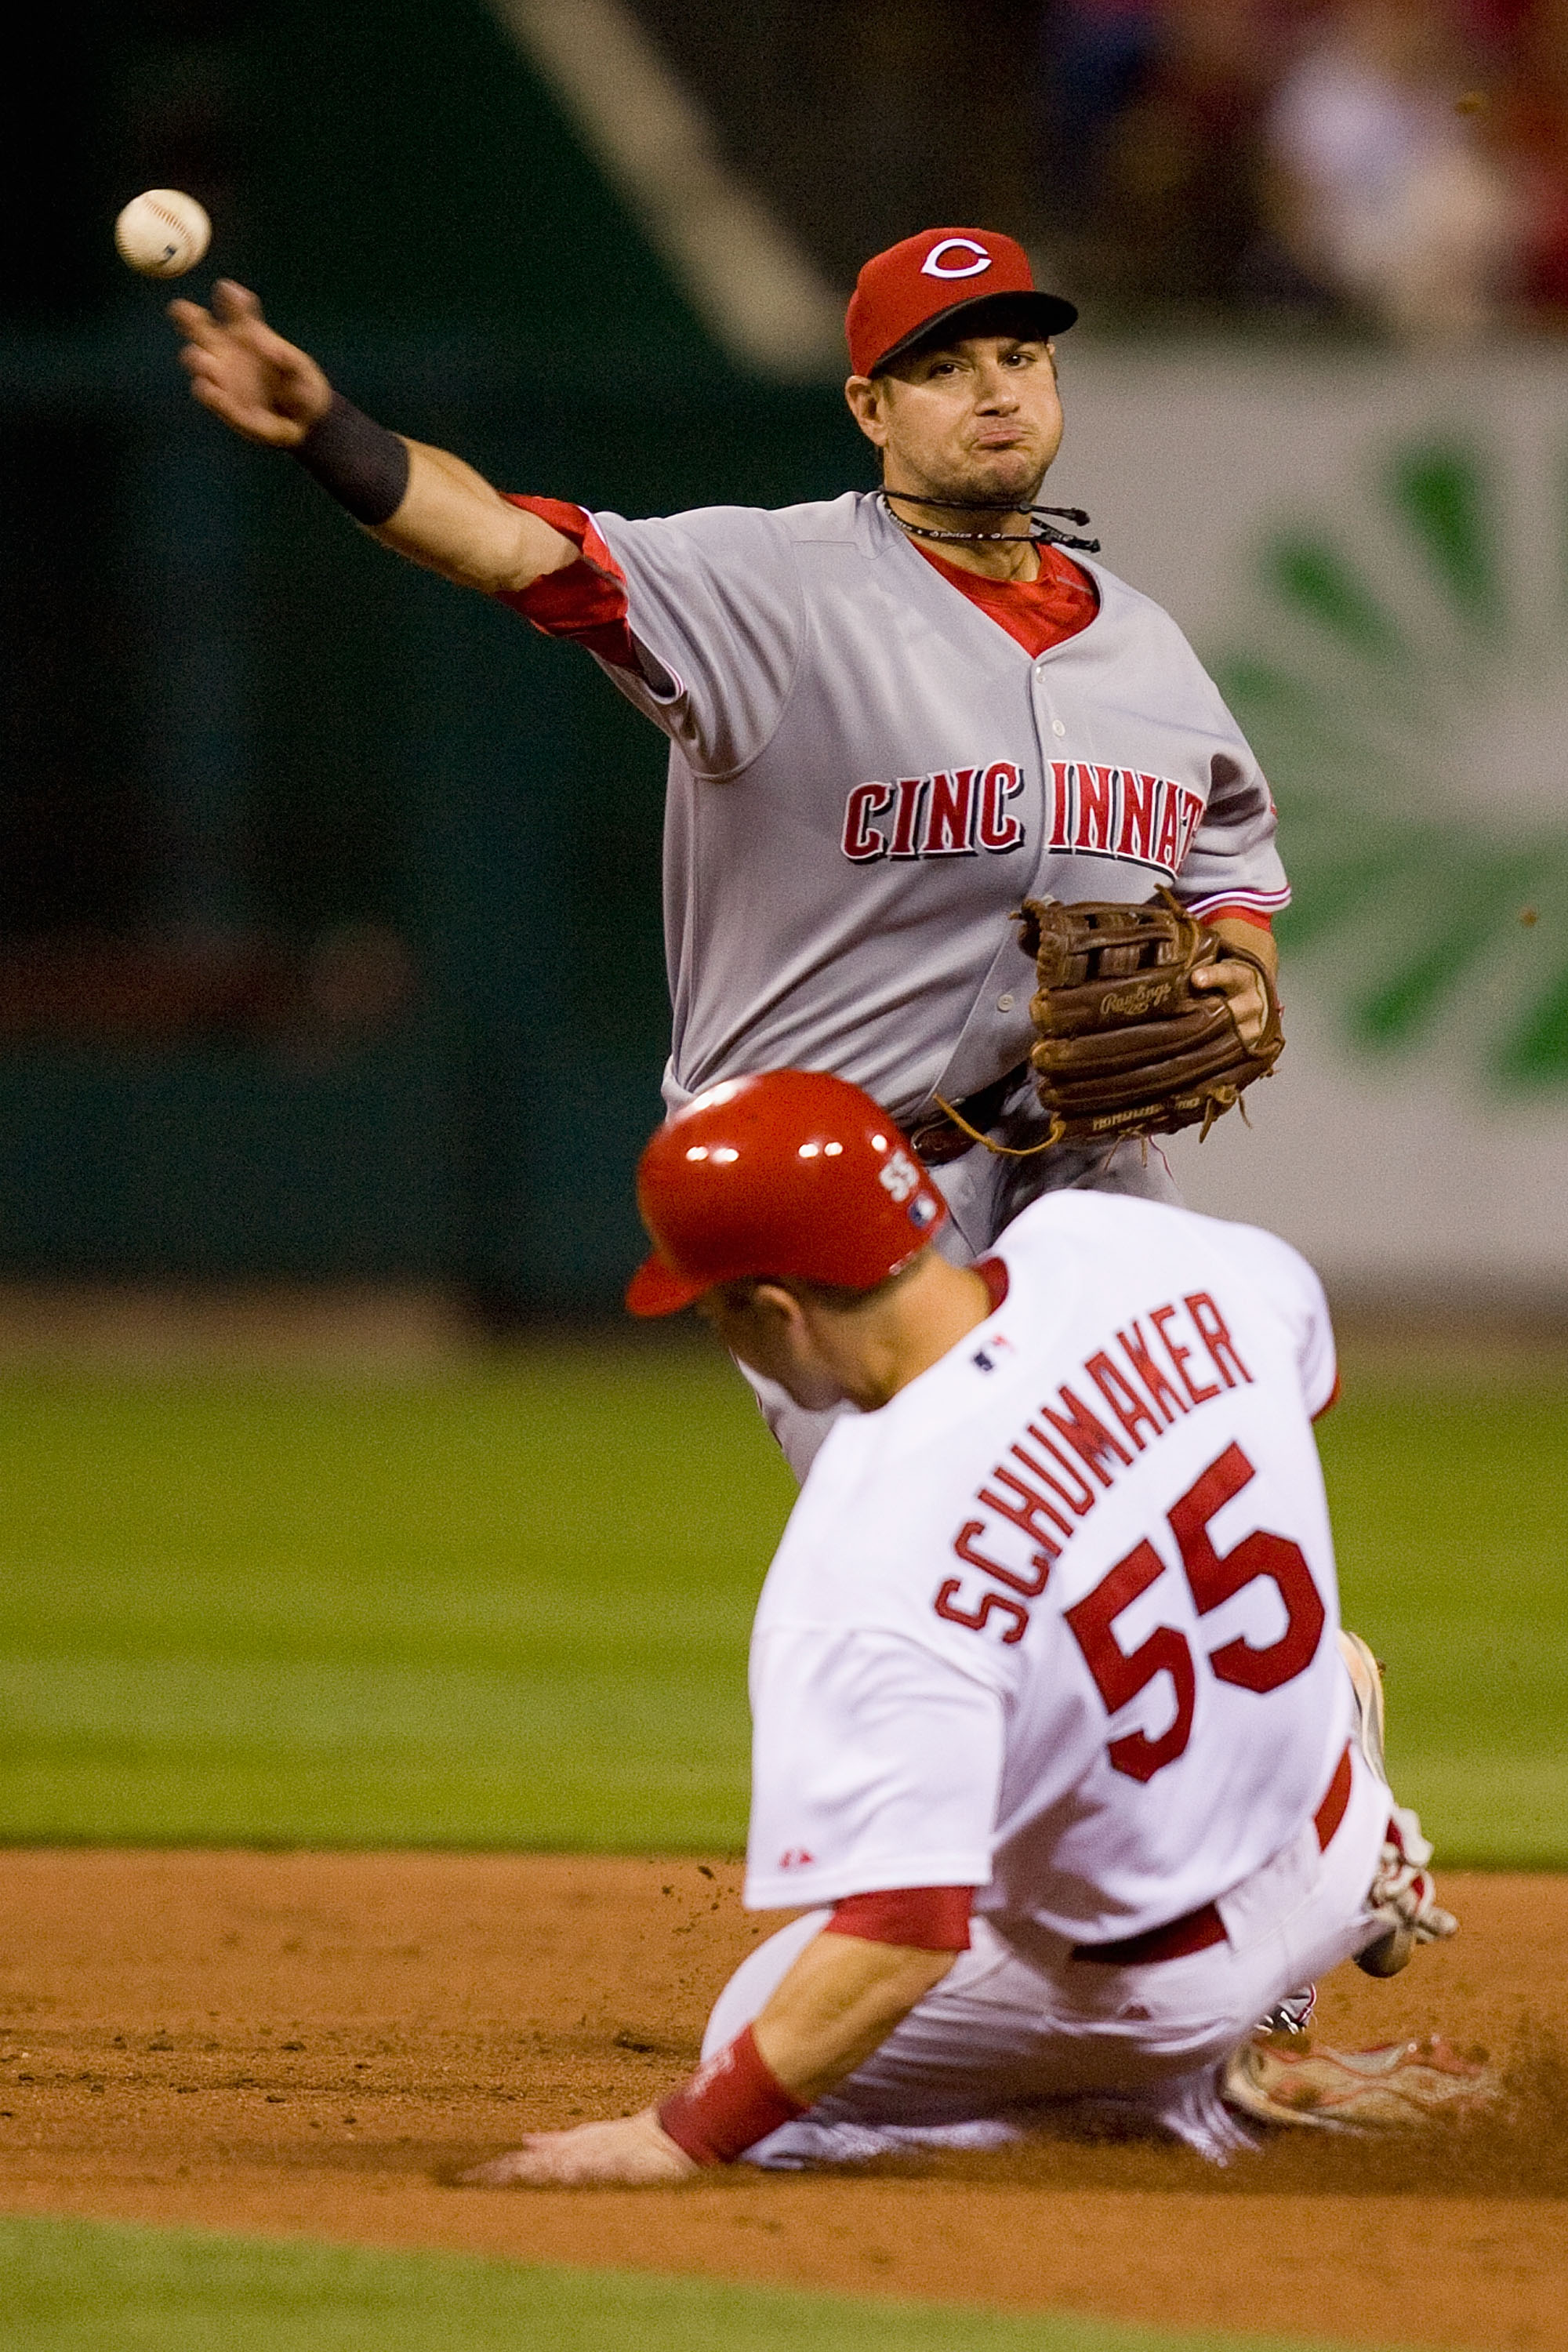 ST. LOUIS - SEPTEMBER 3: Paul Janish #7 of the Cincinnati Reds turns a double play over Skip Schumaker #55 of the St. Louis Cardinals at Busch Stadium on September 3, 2010 in St. Louis, Missouri.  The Cardinals beat the Reds 3-2.  (Photo by Dilip Vishwana